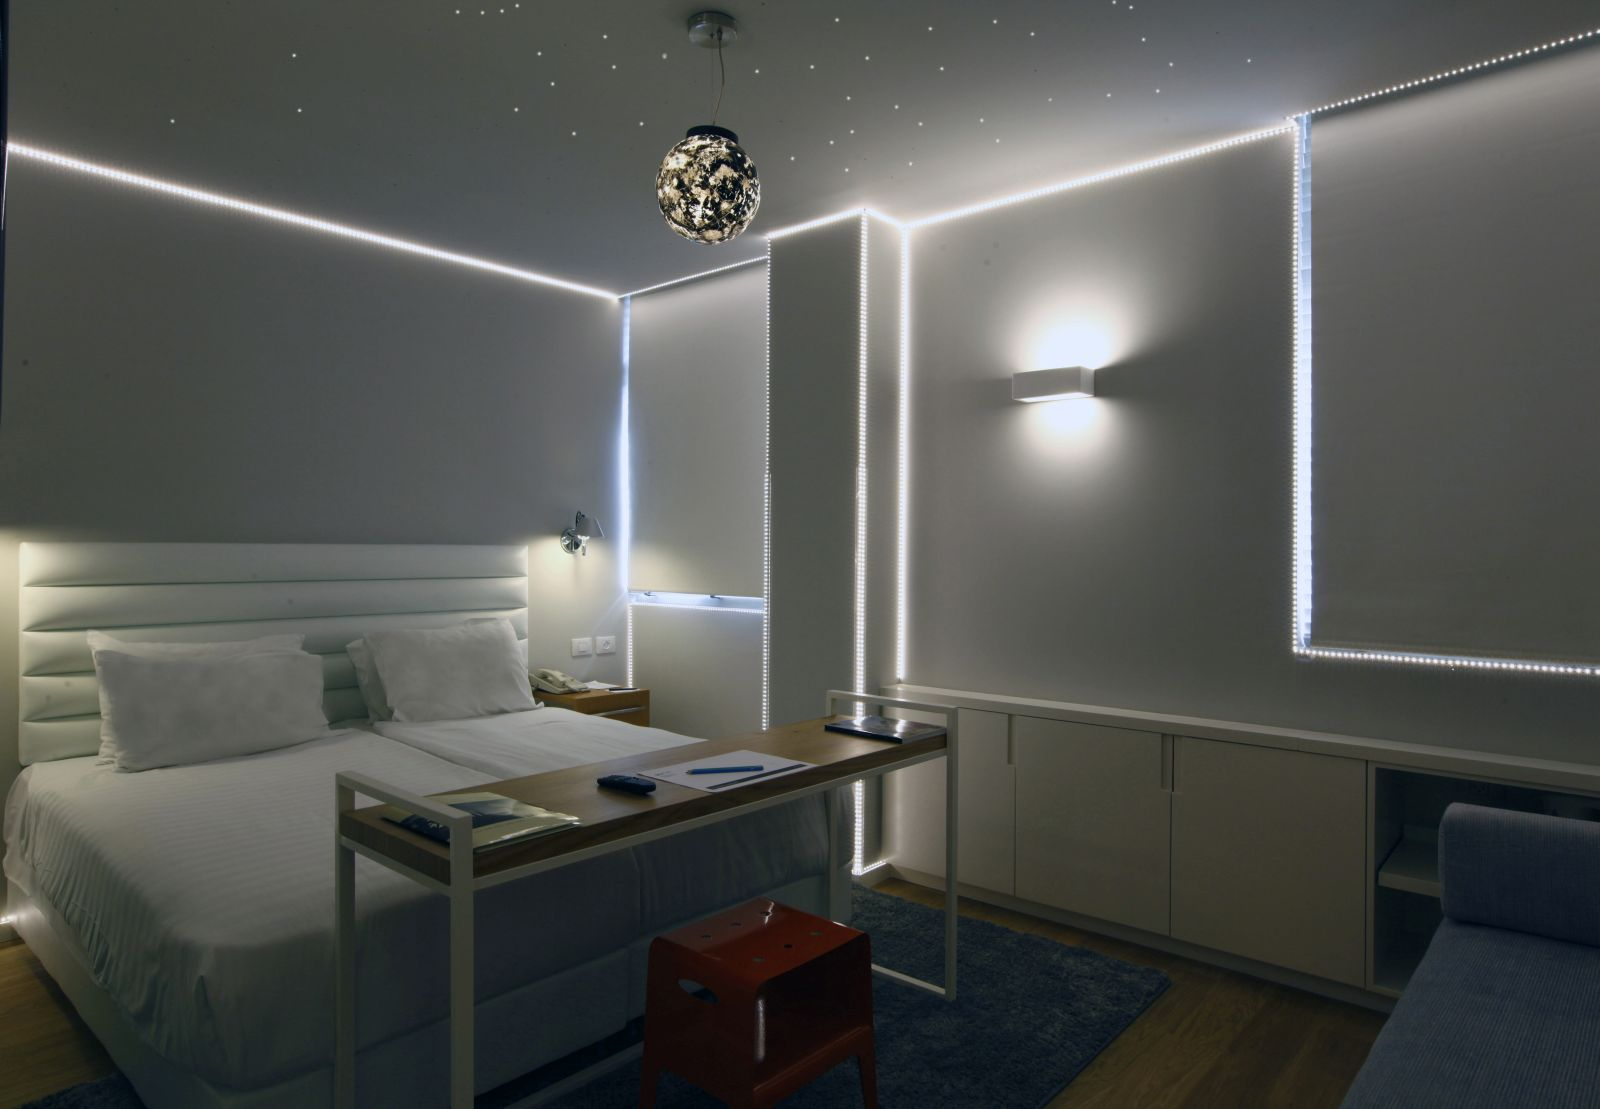 Ron Slavin's works light up this Artplus Hotel room. Photo by Hai Avraham